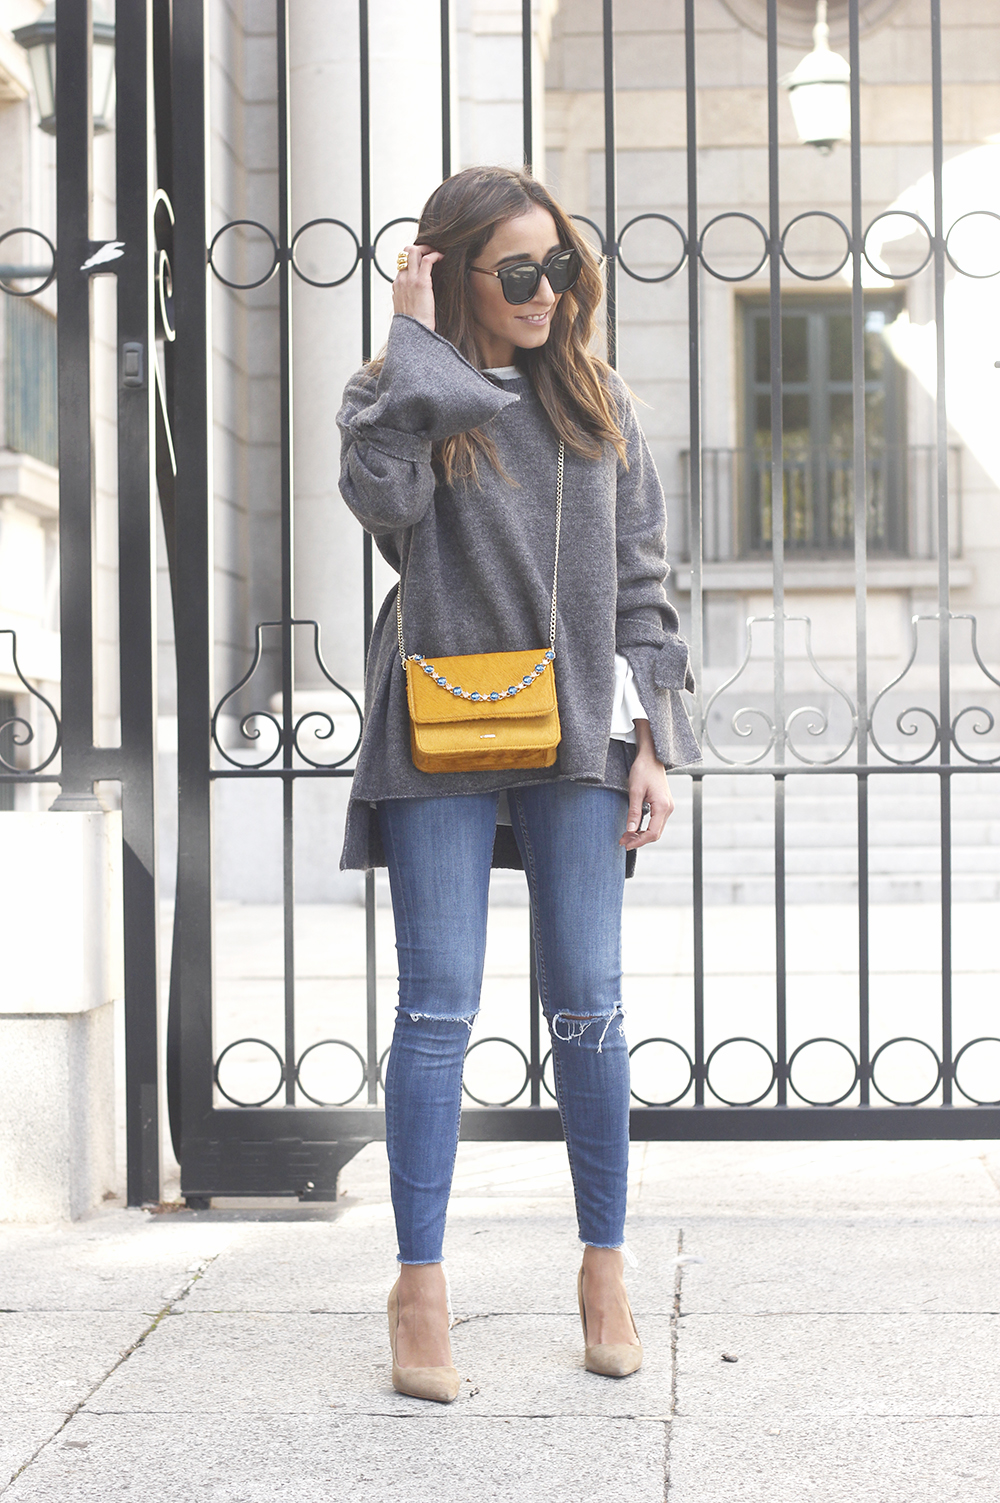 Gray jersey with sleeves bell white blouse ripped jeans heels uterqüe bag accessories fashion outfit09